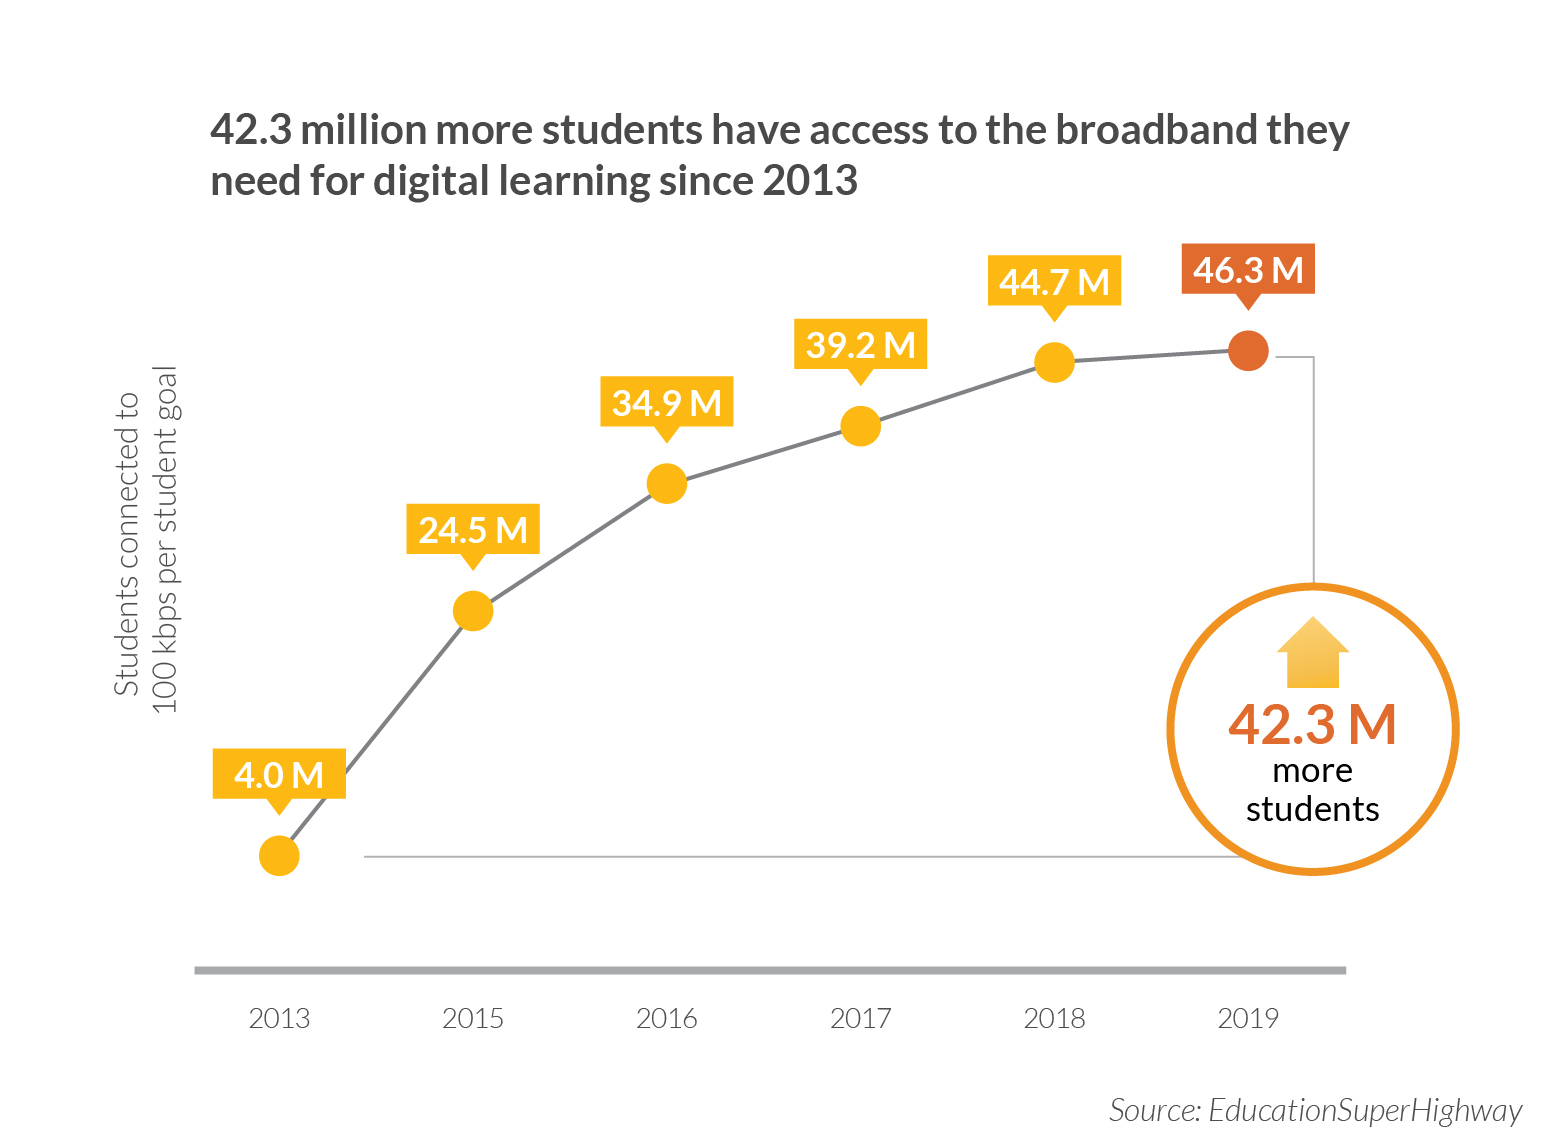 a graph of students connected to broadband wifi courtesy of EducationSuperHighway